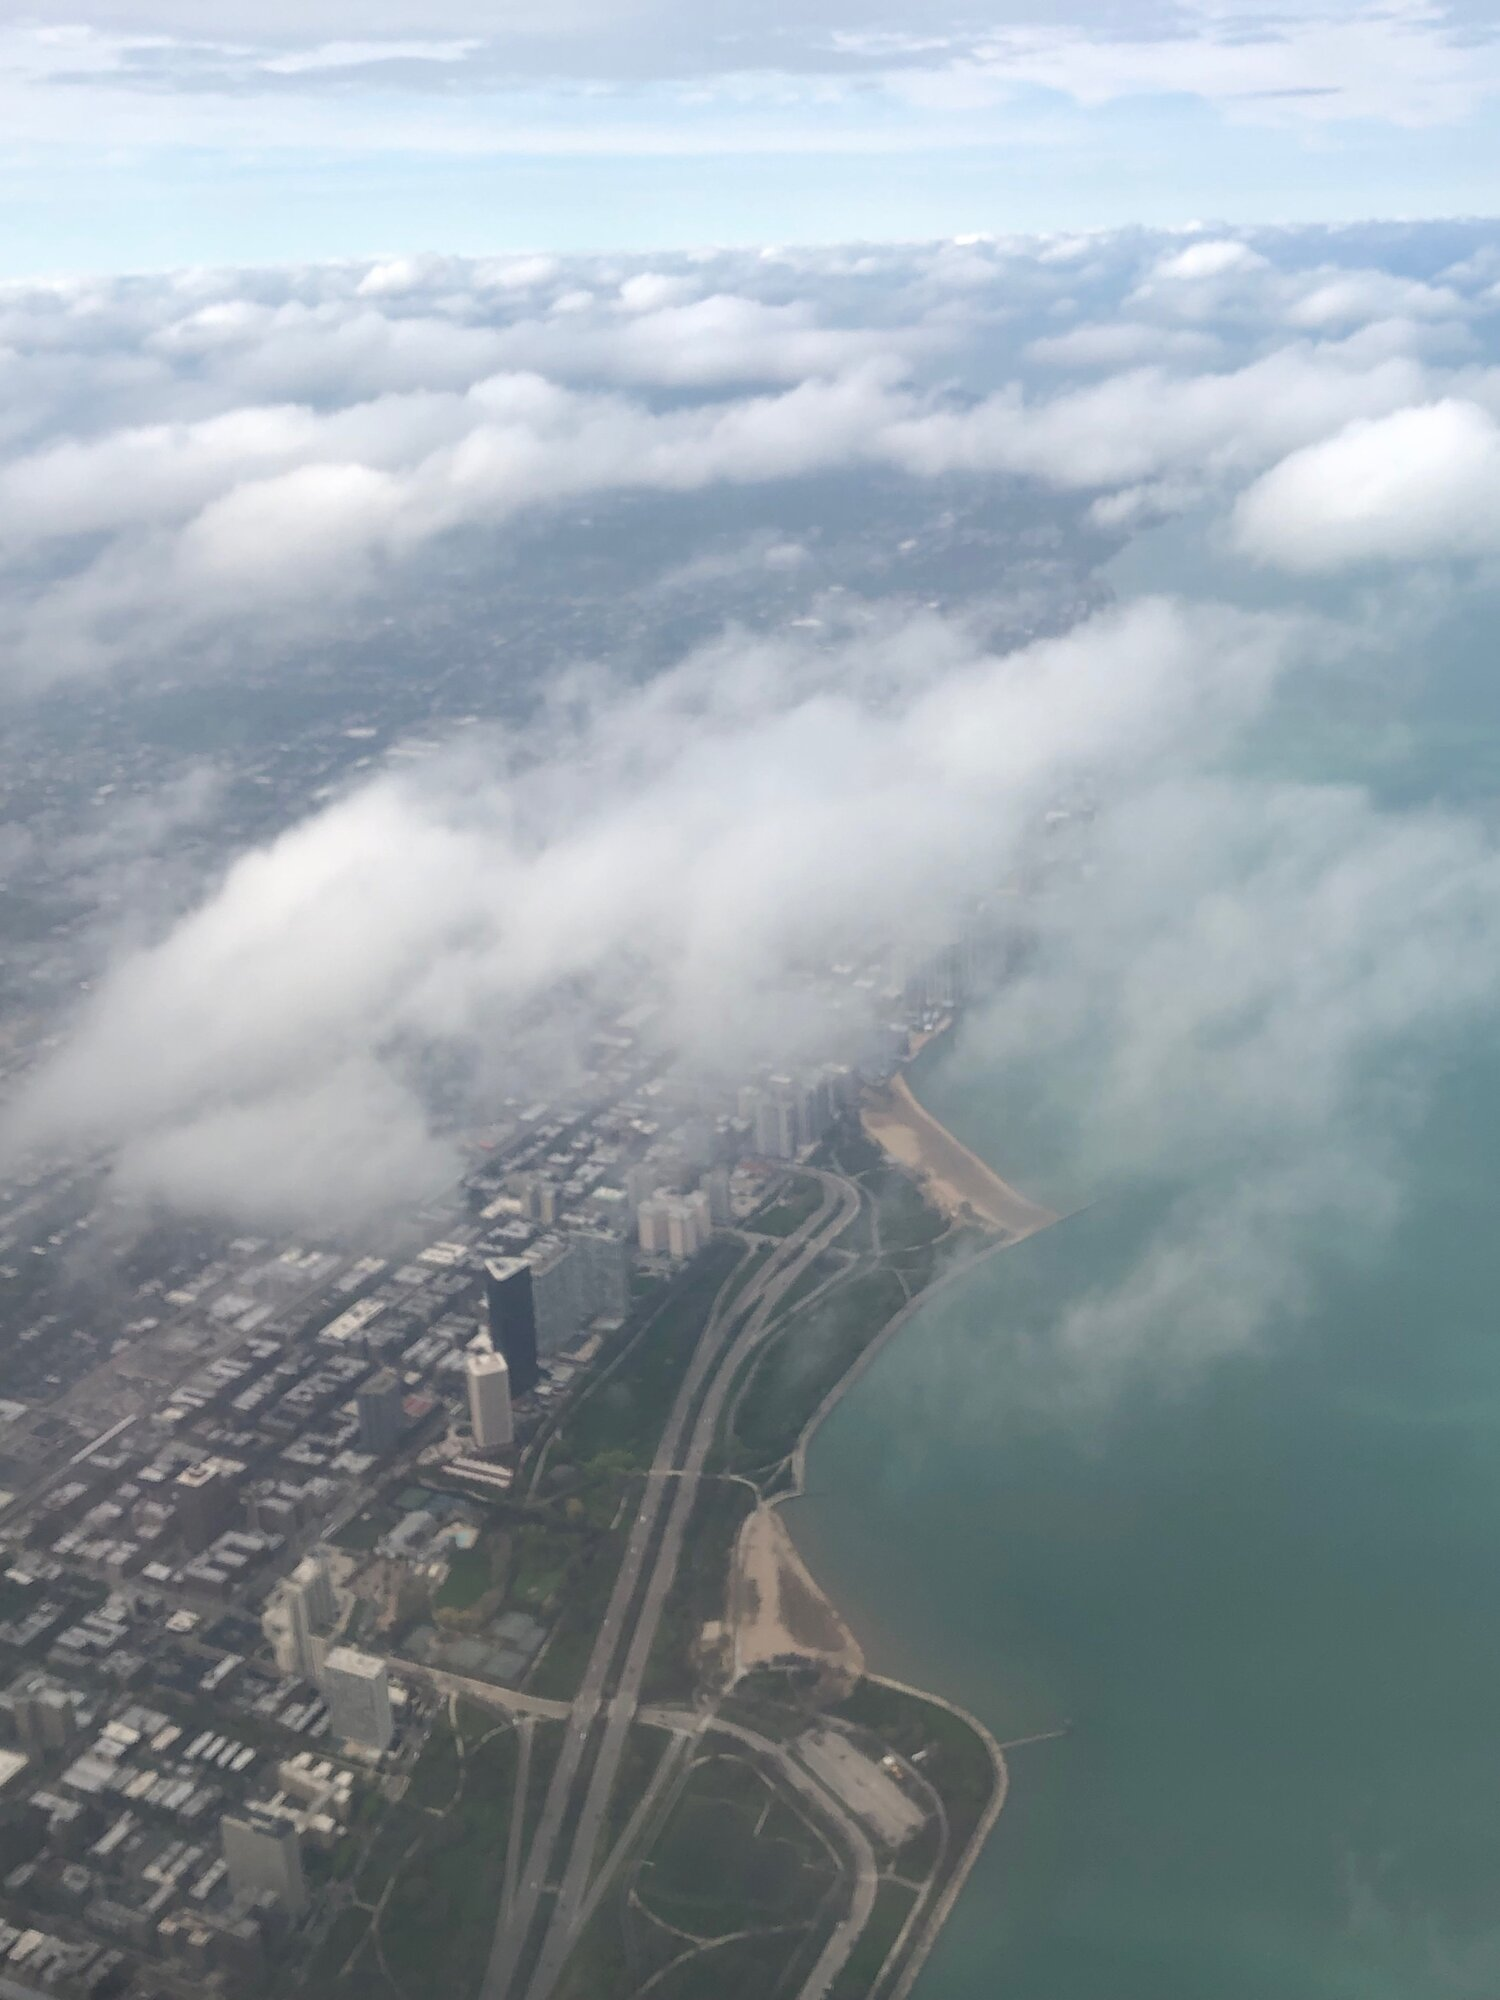 Arriving into Chicago